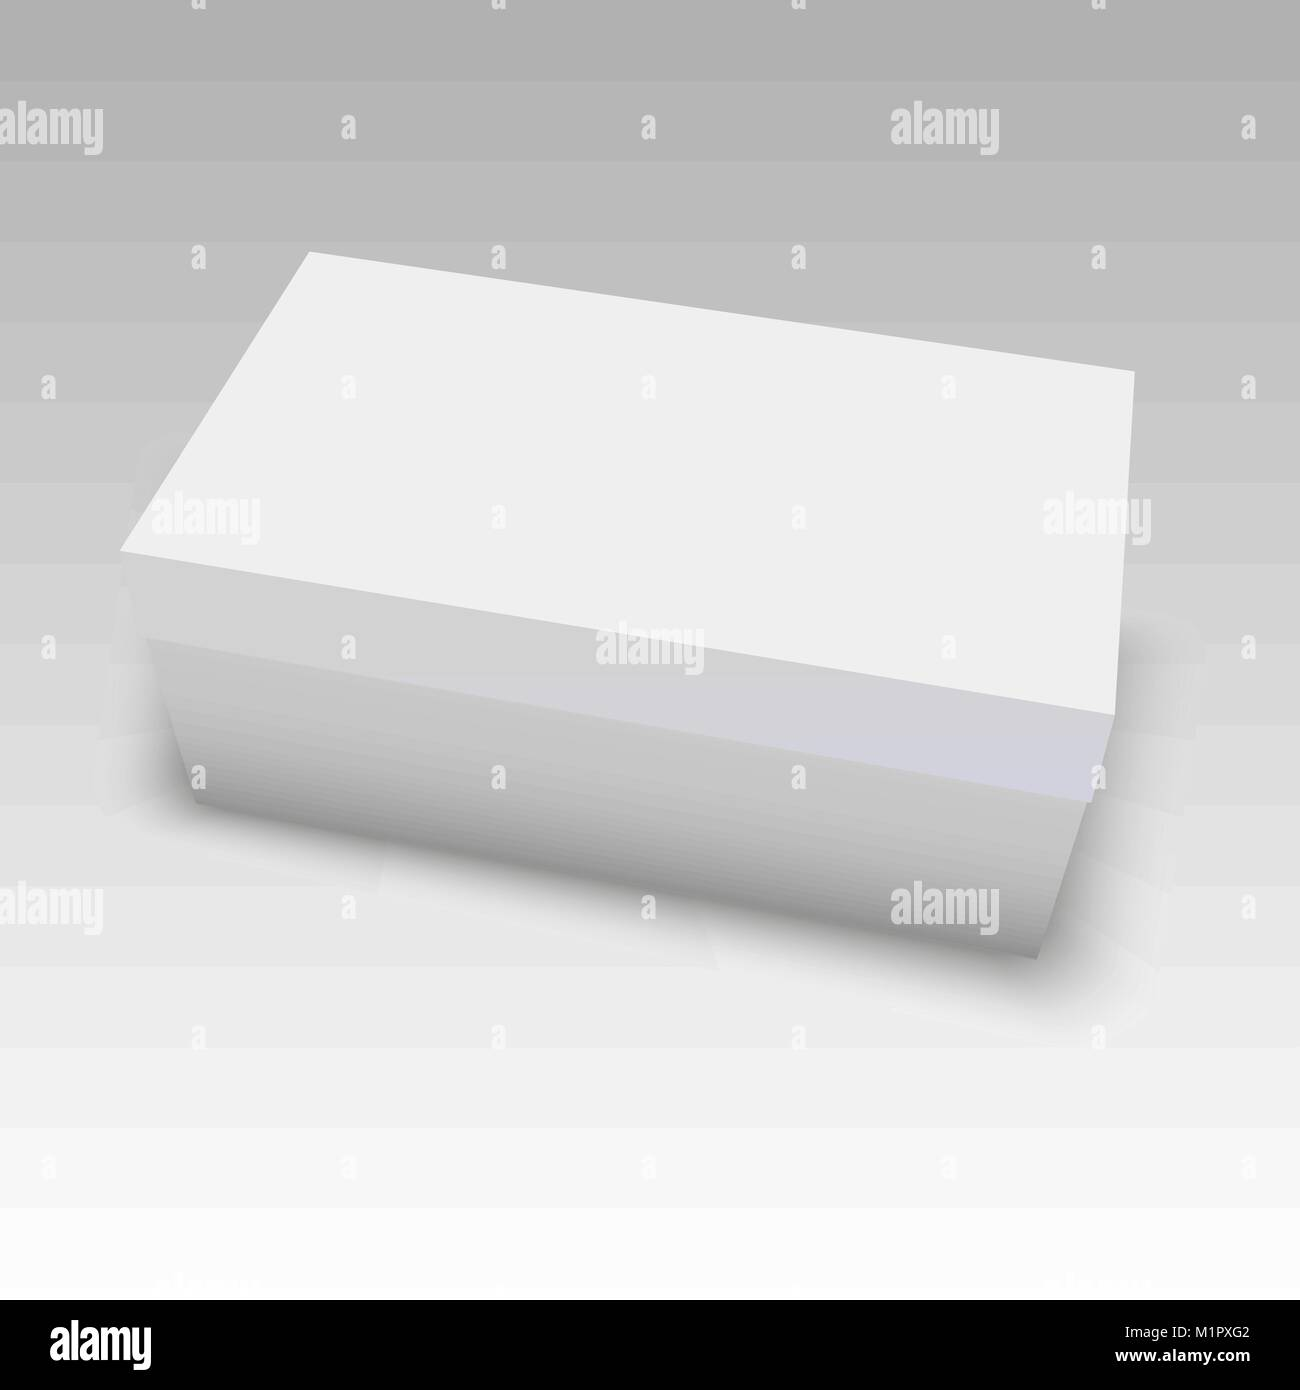 Shoe Box Stock Vector Images - Alamy